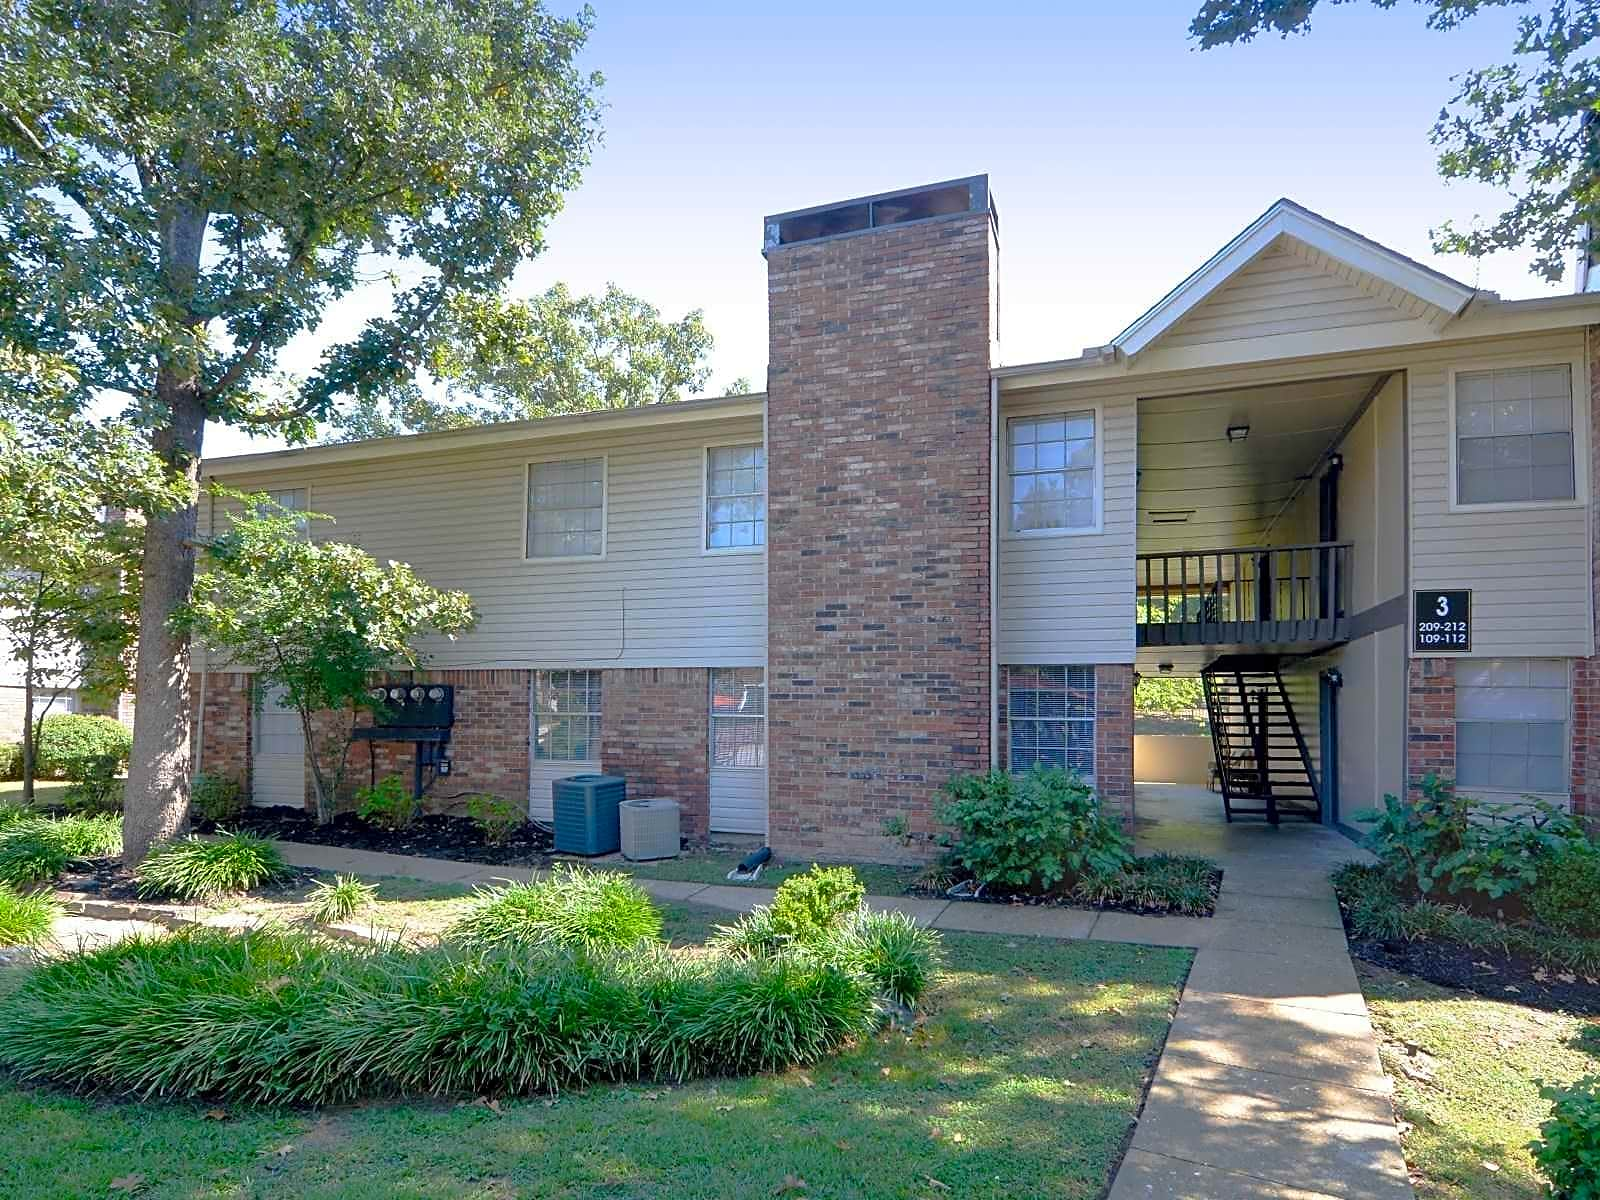 Photo: Little Rock Apartment for Rent - $835.00 / month; 3 Bd & 2 Ba